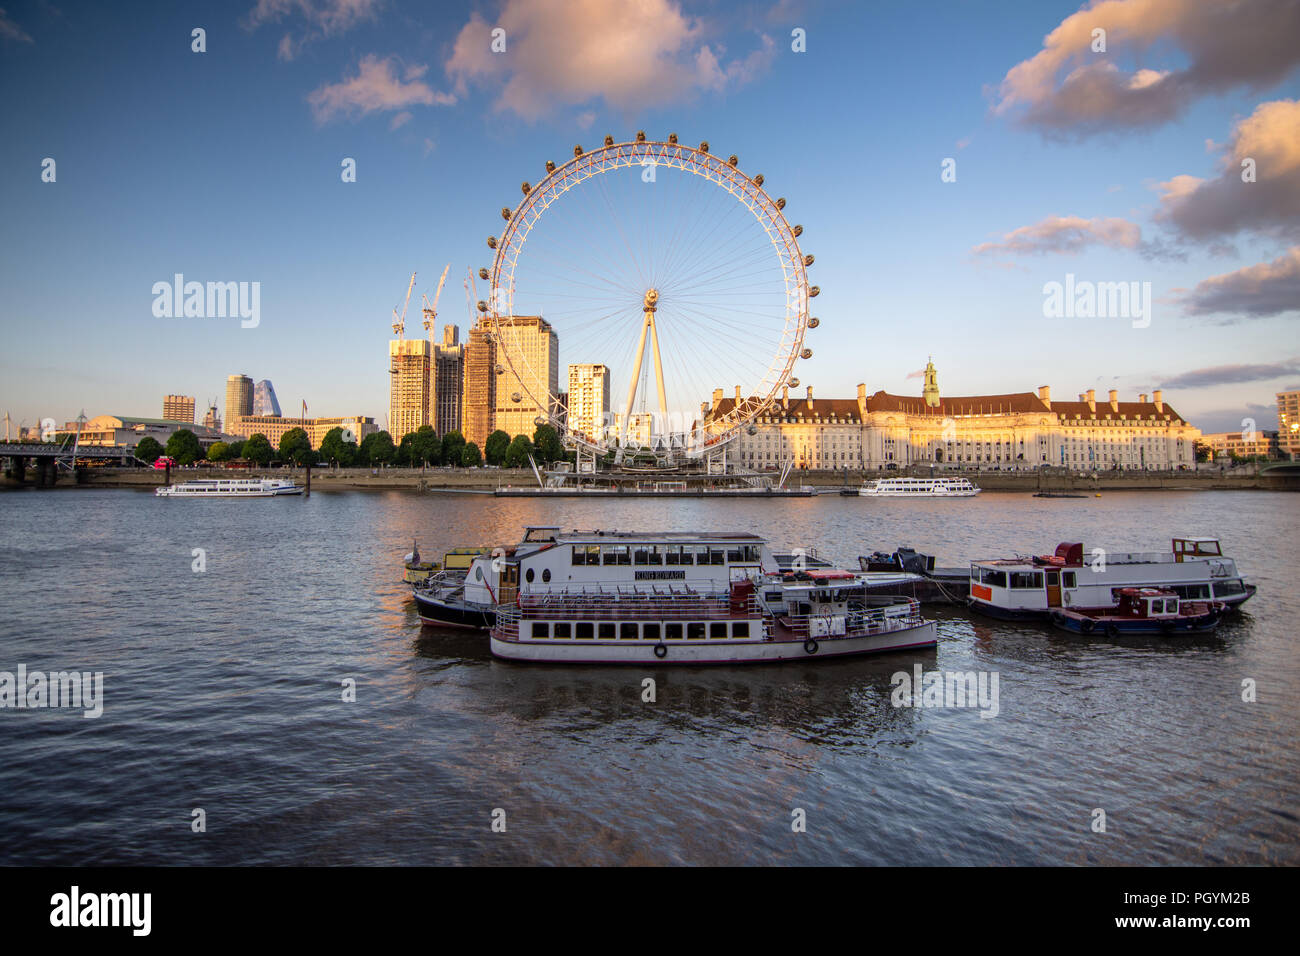 London, England, UK - June 12, 2018: New skyscrapers are under construction at the Shell Centre behind the London Eye observation wheel on the South B Stock Photo